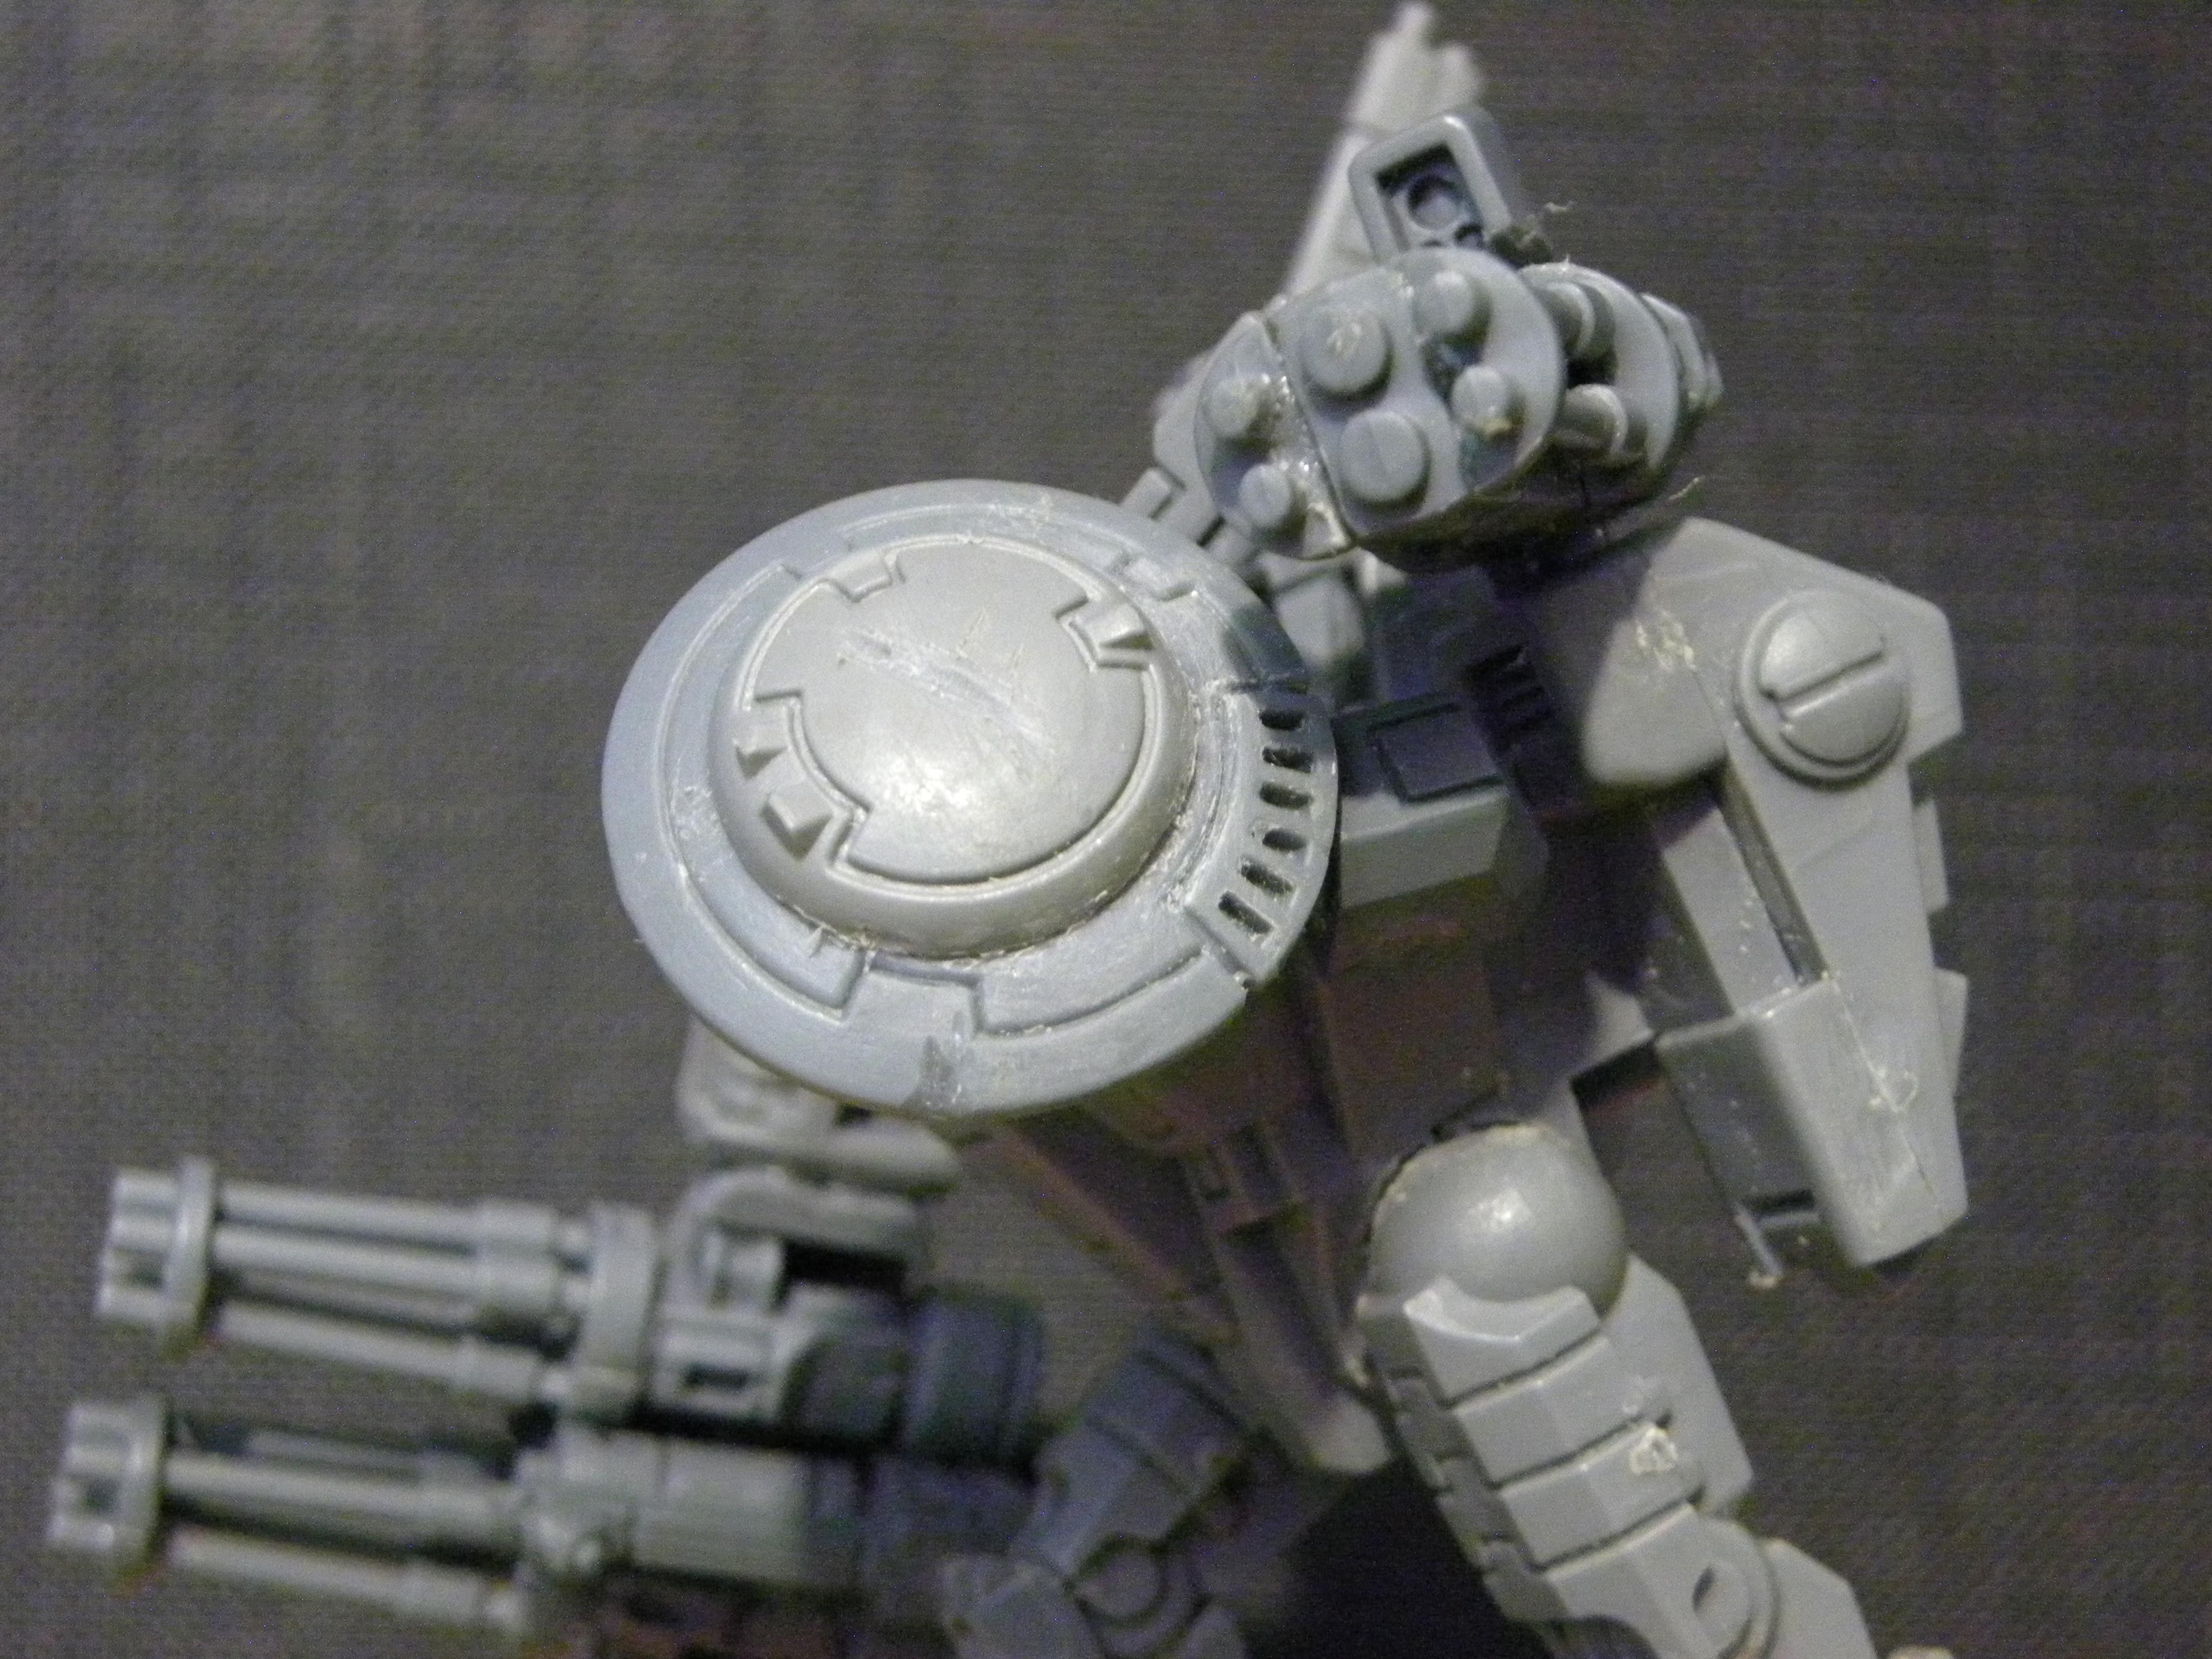 Army, Battle, Conversion, Crisis Battlesuit, Detail, Suit, Tau, Warhammer 40,000, Work In Progress, XV8